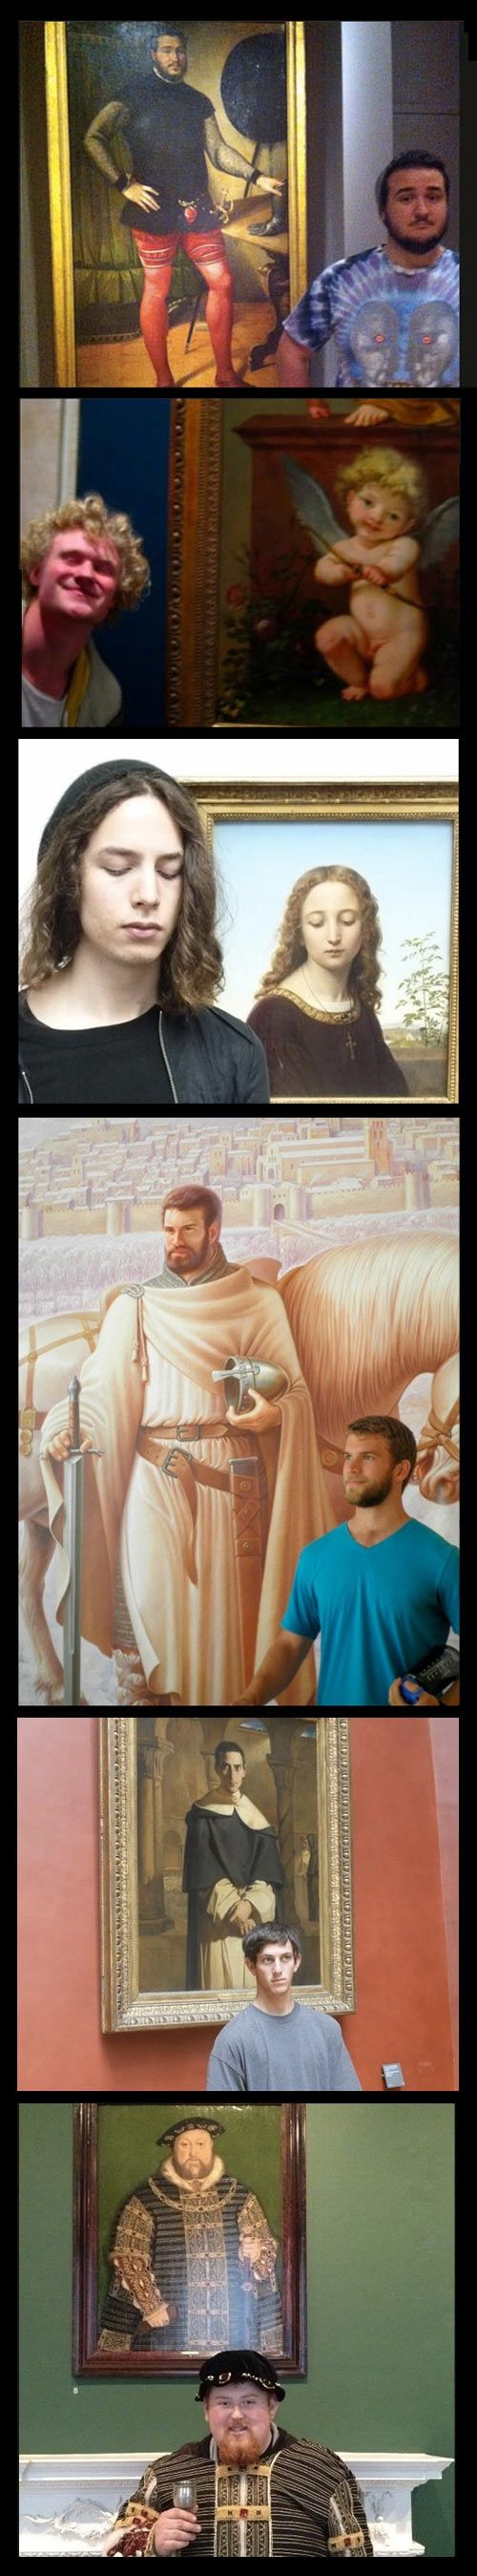 Paintings and their doppelgangers.